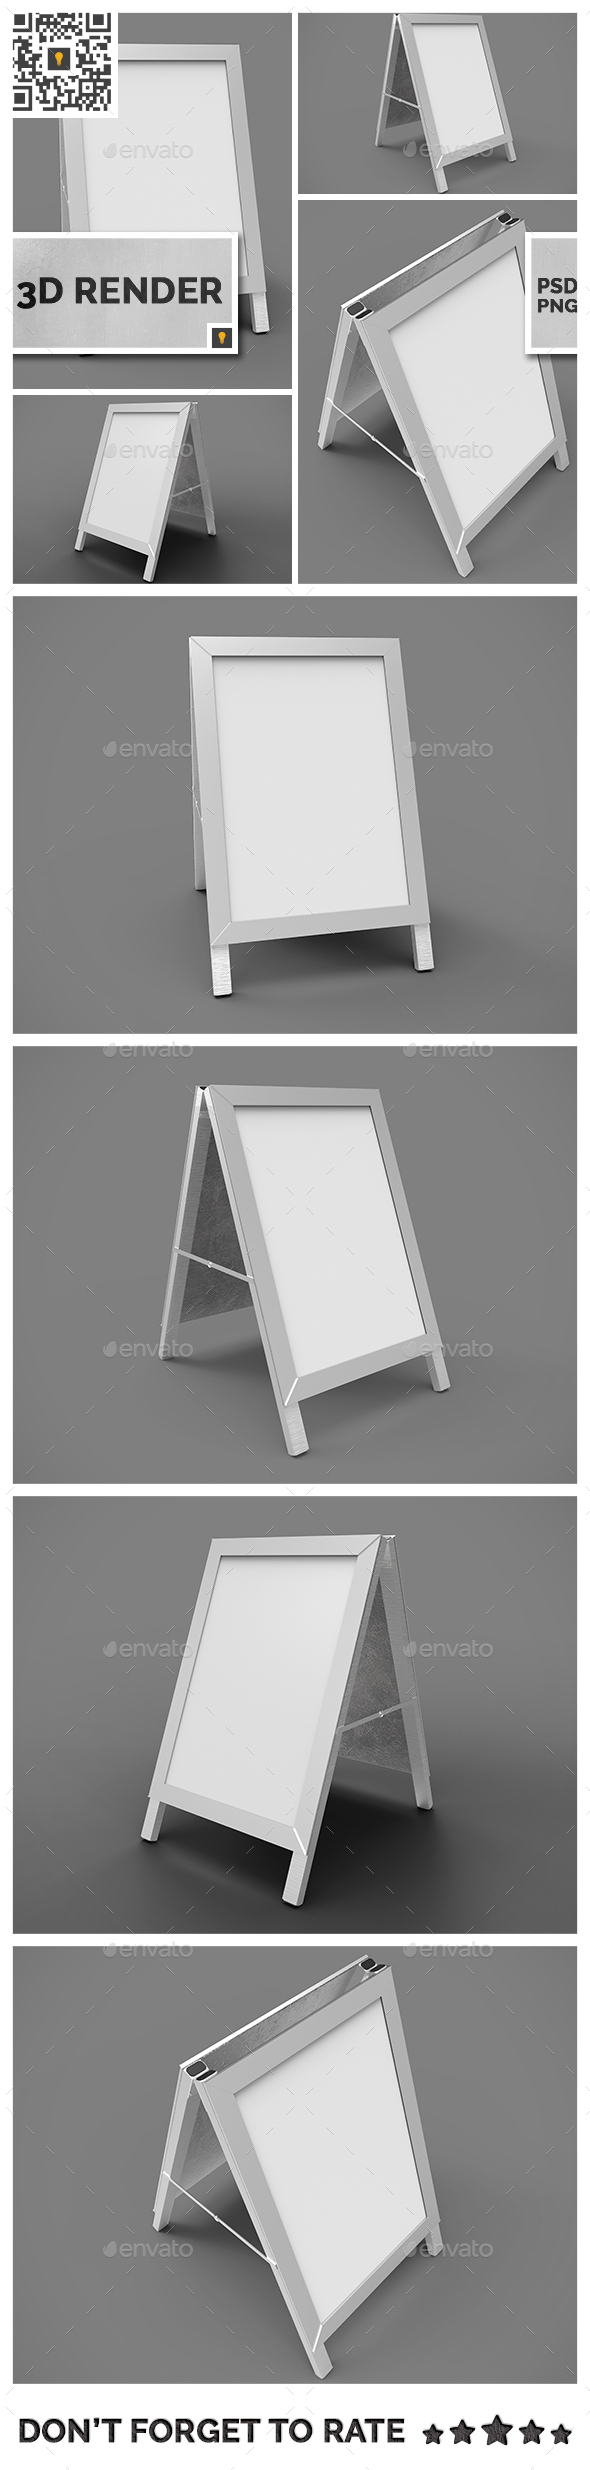 Poster Stand Display 3D Render - Miscellaneous 3D Renders